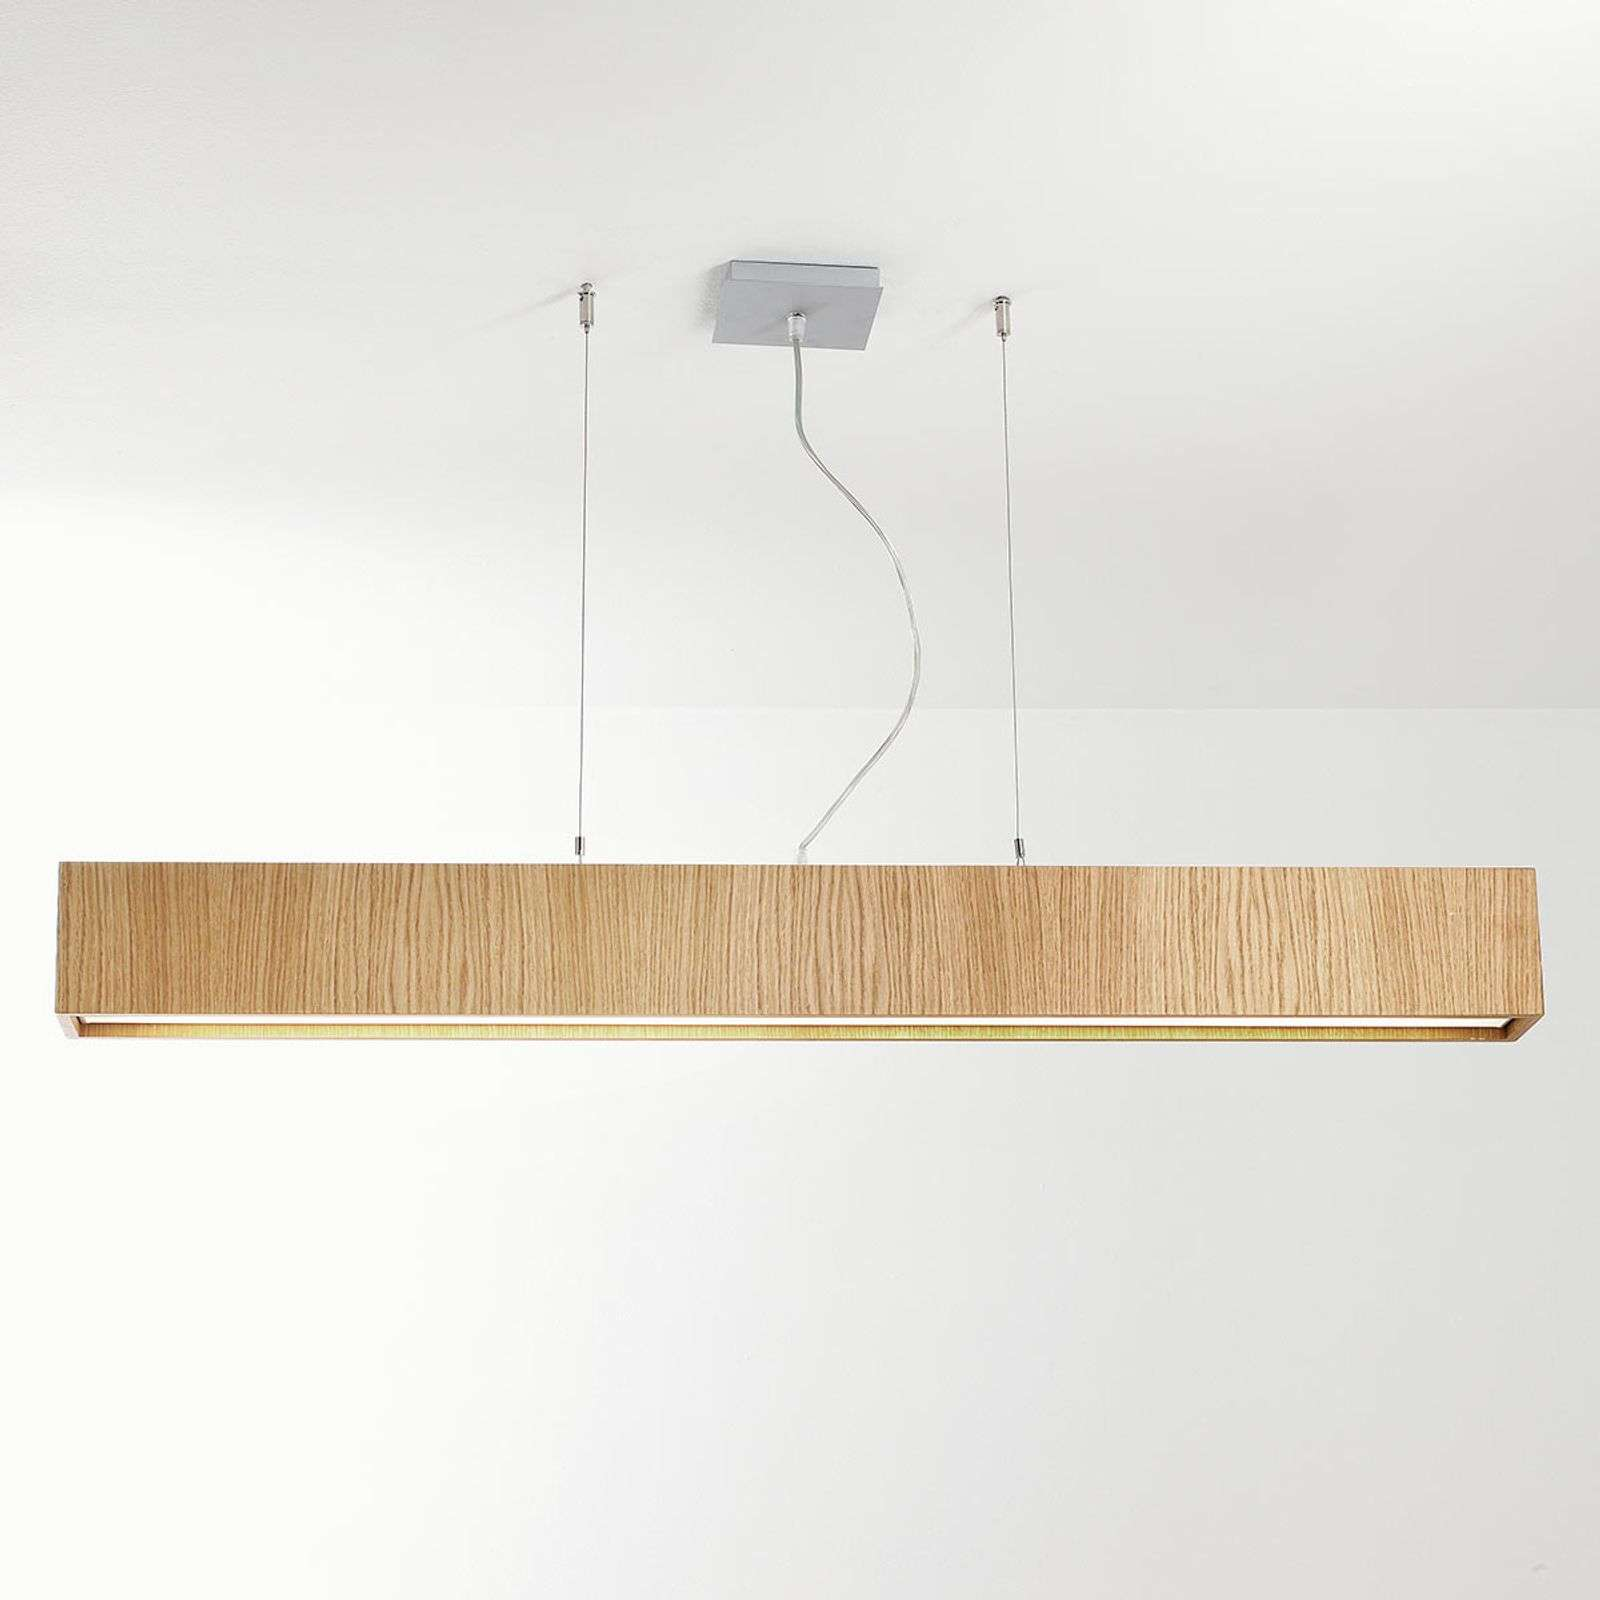 Suspension LED Carré S 120x10, chêne